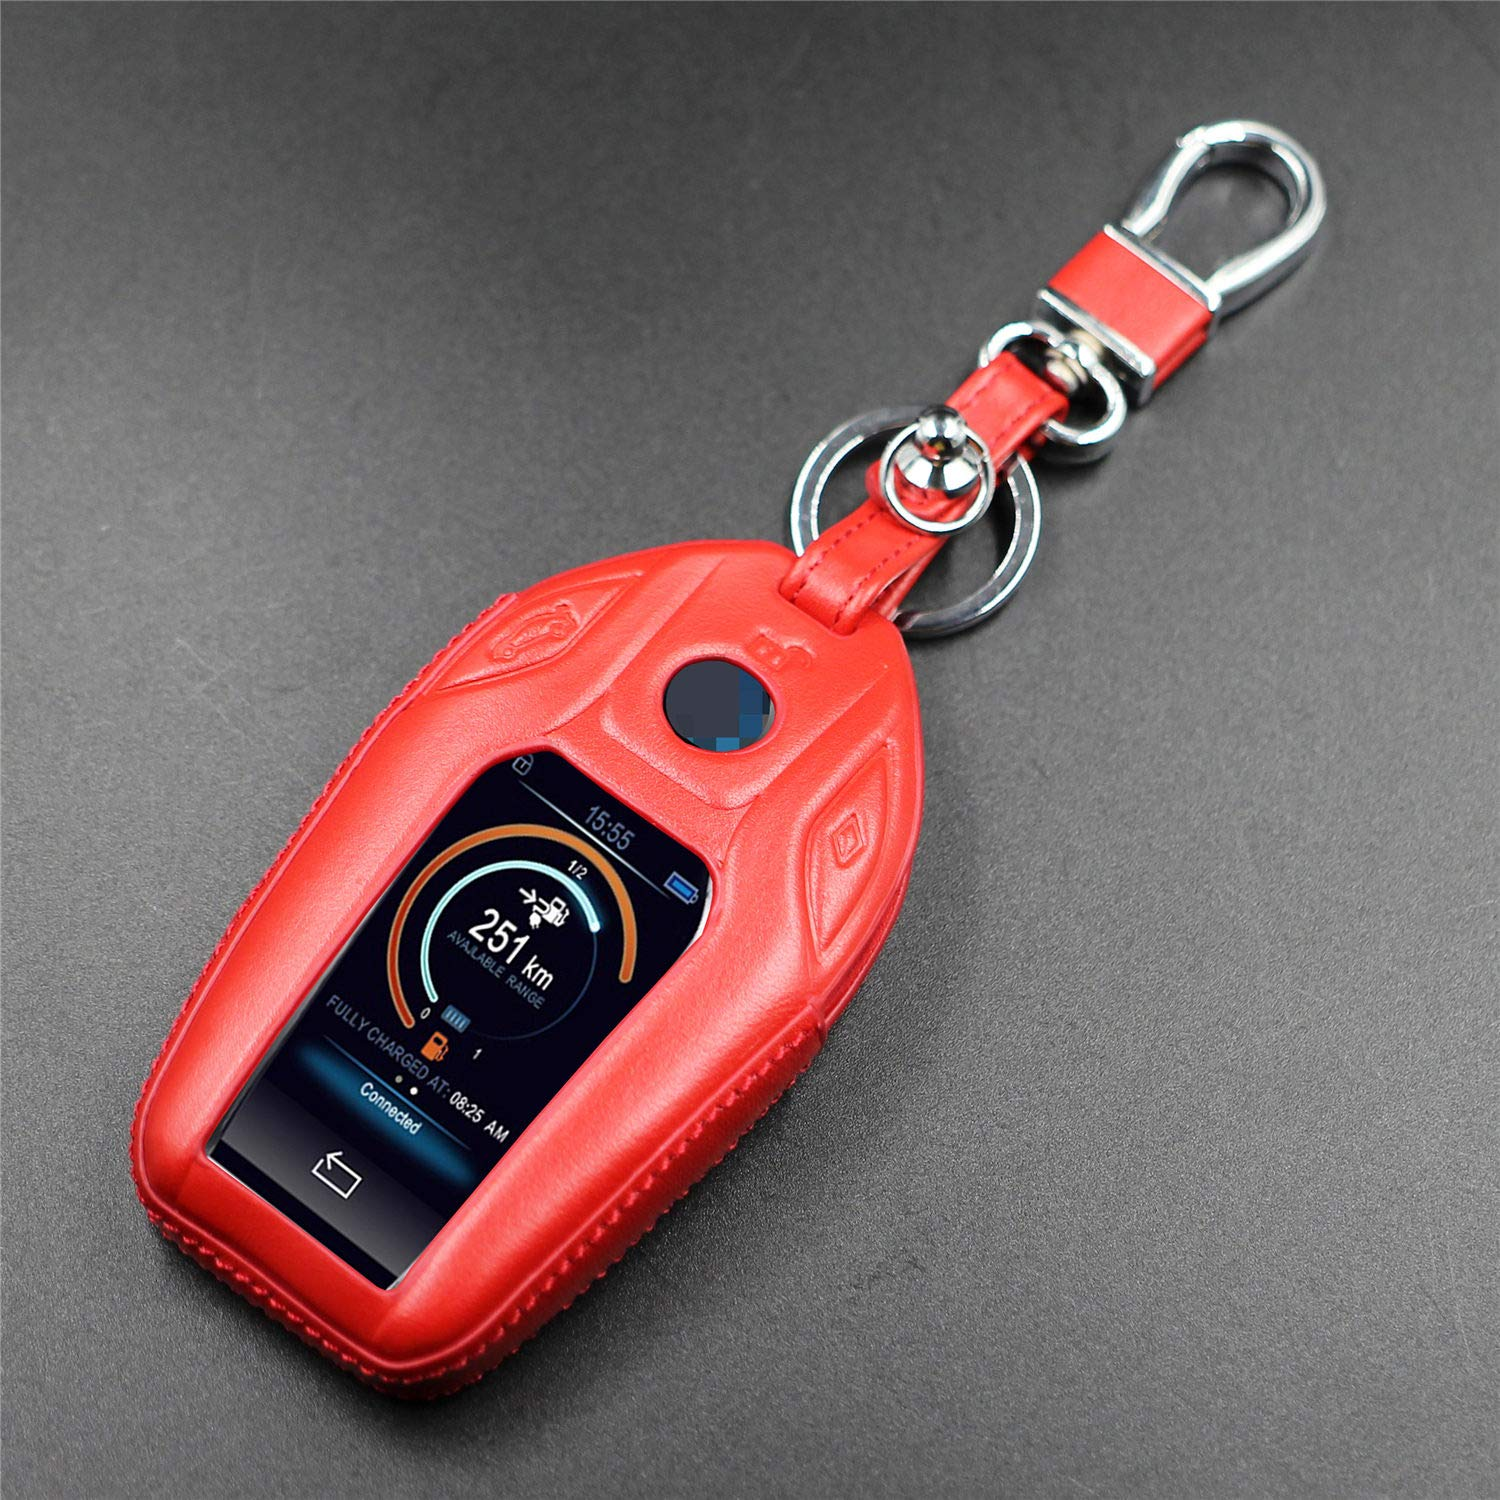 Black M.JVisun Leather Key Fob Case For Men Women Leather Key Fob Cover For BMW LCD Key Smart Car Remote Key Pouch Bag With Key Rings Kit Key Chain Keychain Holder Metal Hook